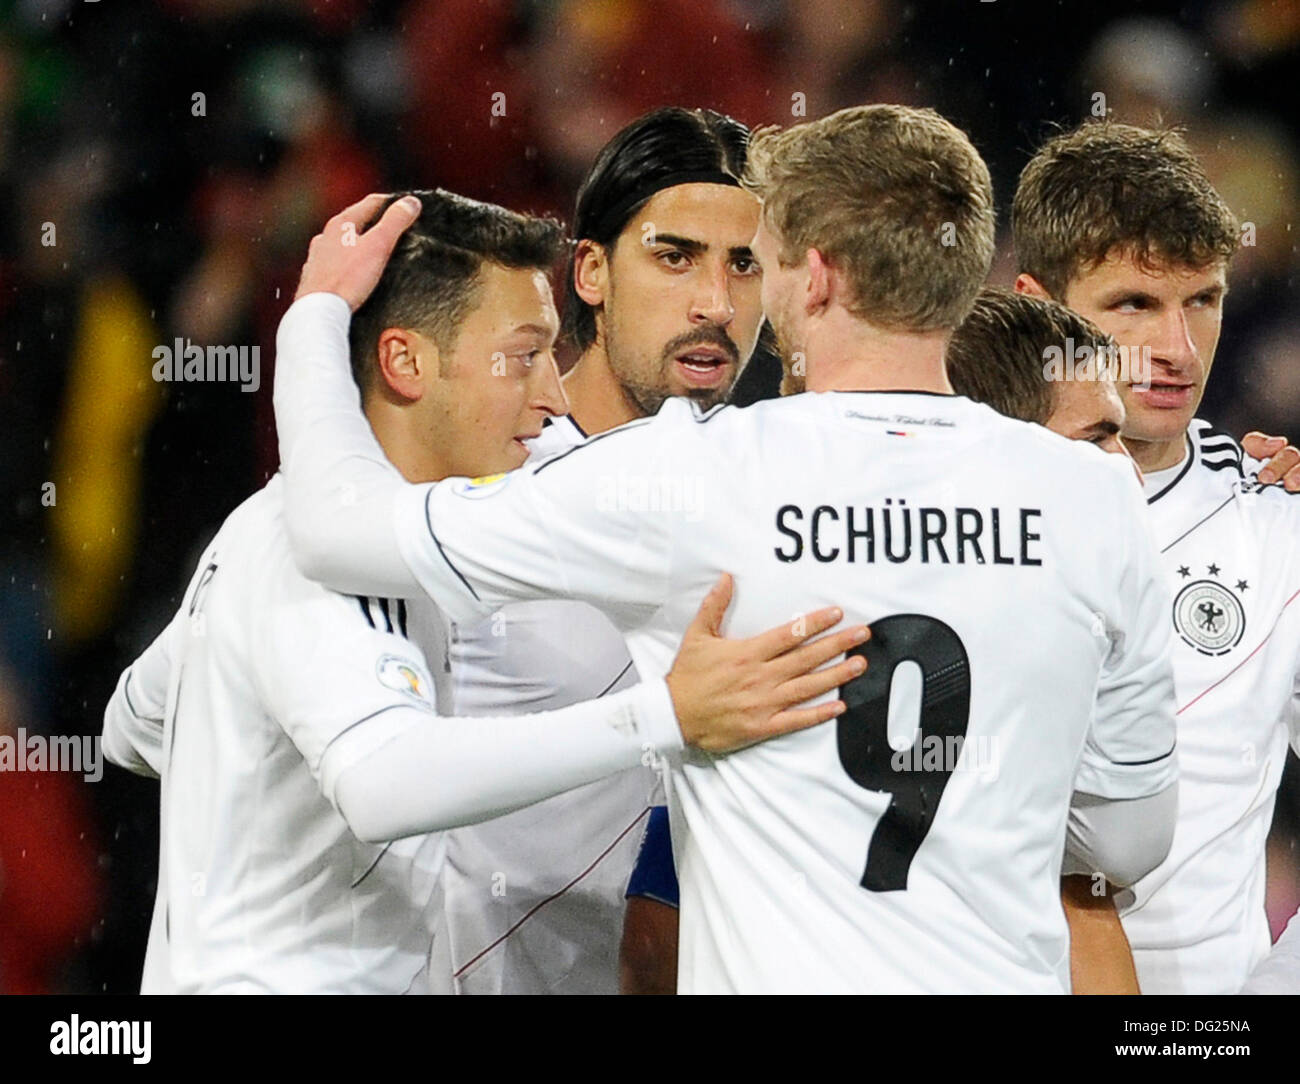 Cologne, Germany. 11th Oct, 2013. Qualifying match for  FIFA Football World Cup 2014 Brasil in RheinEnergie stadium, Germany vs Republic of Ireland 3:0 -- Germany's goal scorers Mesut …zil (Oezil, GER), Sami Khedira (GER) and Andre SchŸrrle (Schuerrle, GER), from left celebrate © kolvenbach/Alamy Live News - Stock Image